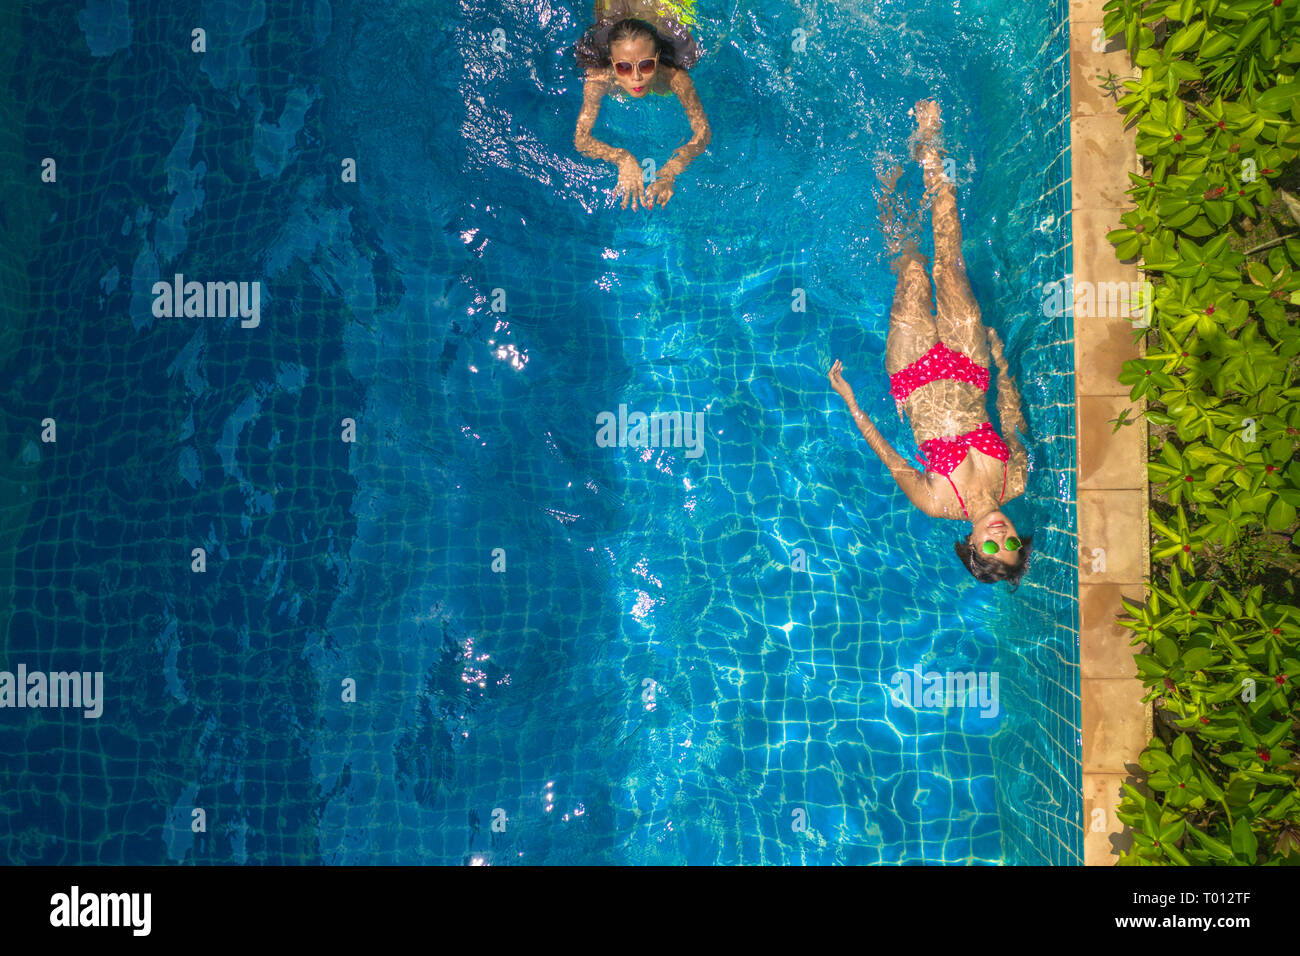 aerial top view above swimming pool. woman in yellow bikini and woman in red bikini are swimming  in villa pool - Stock Image